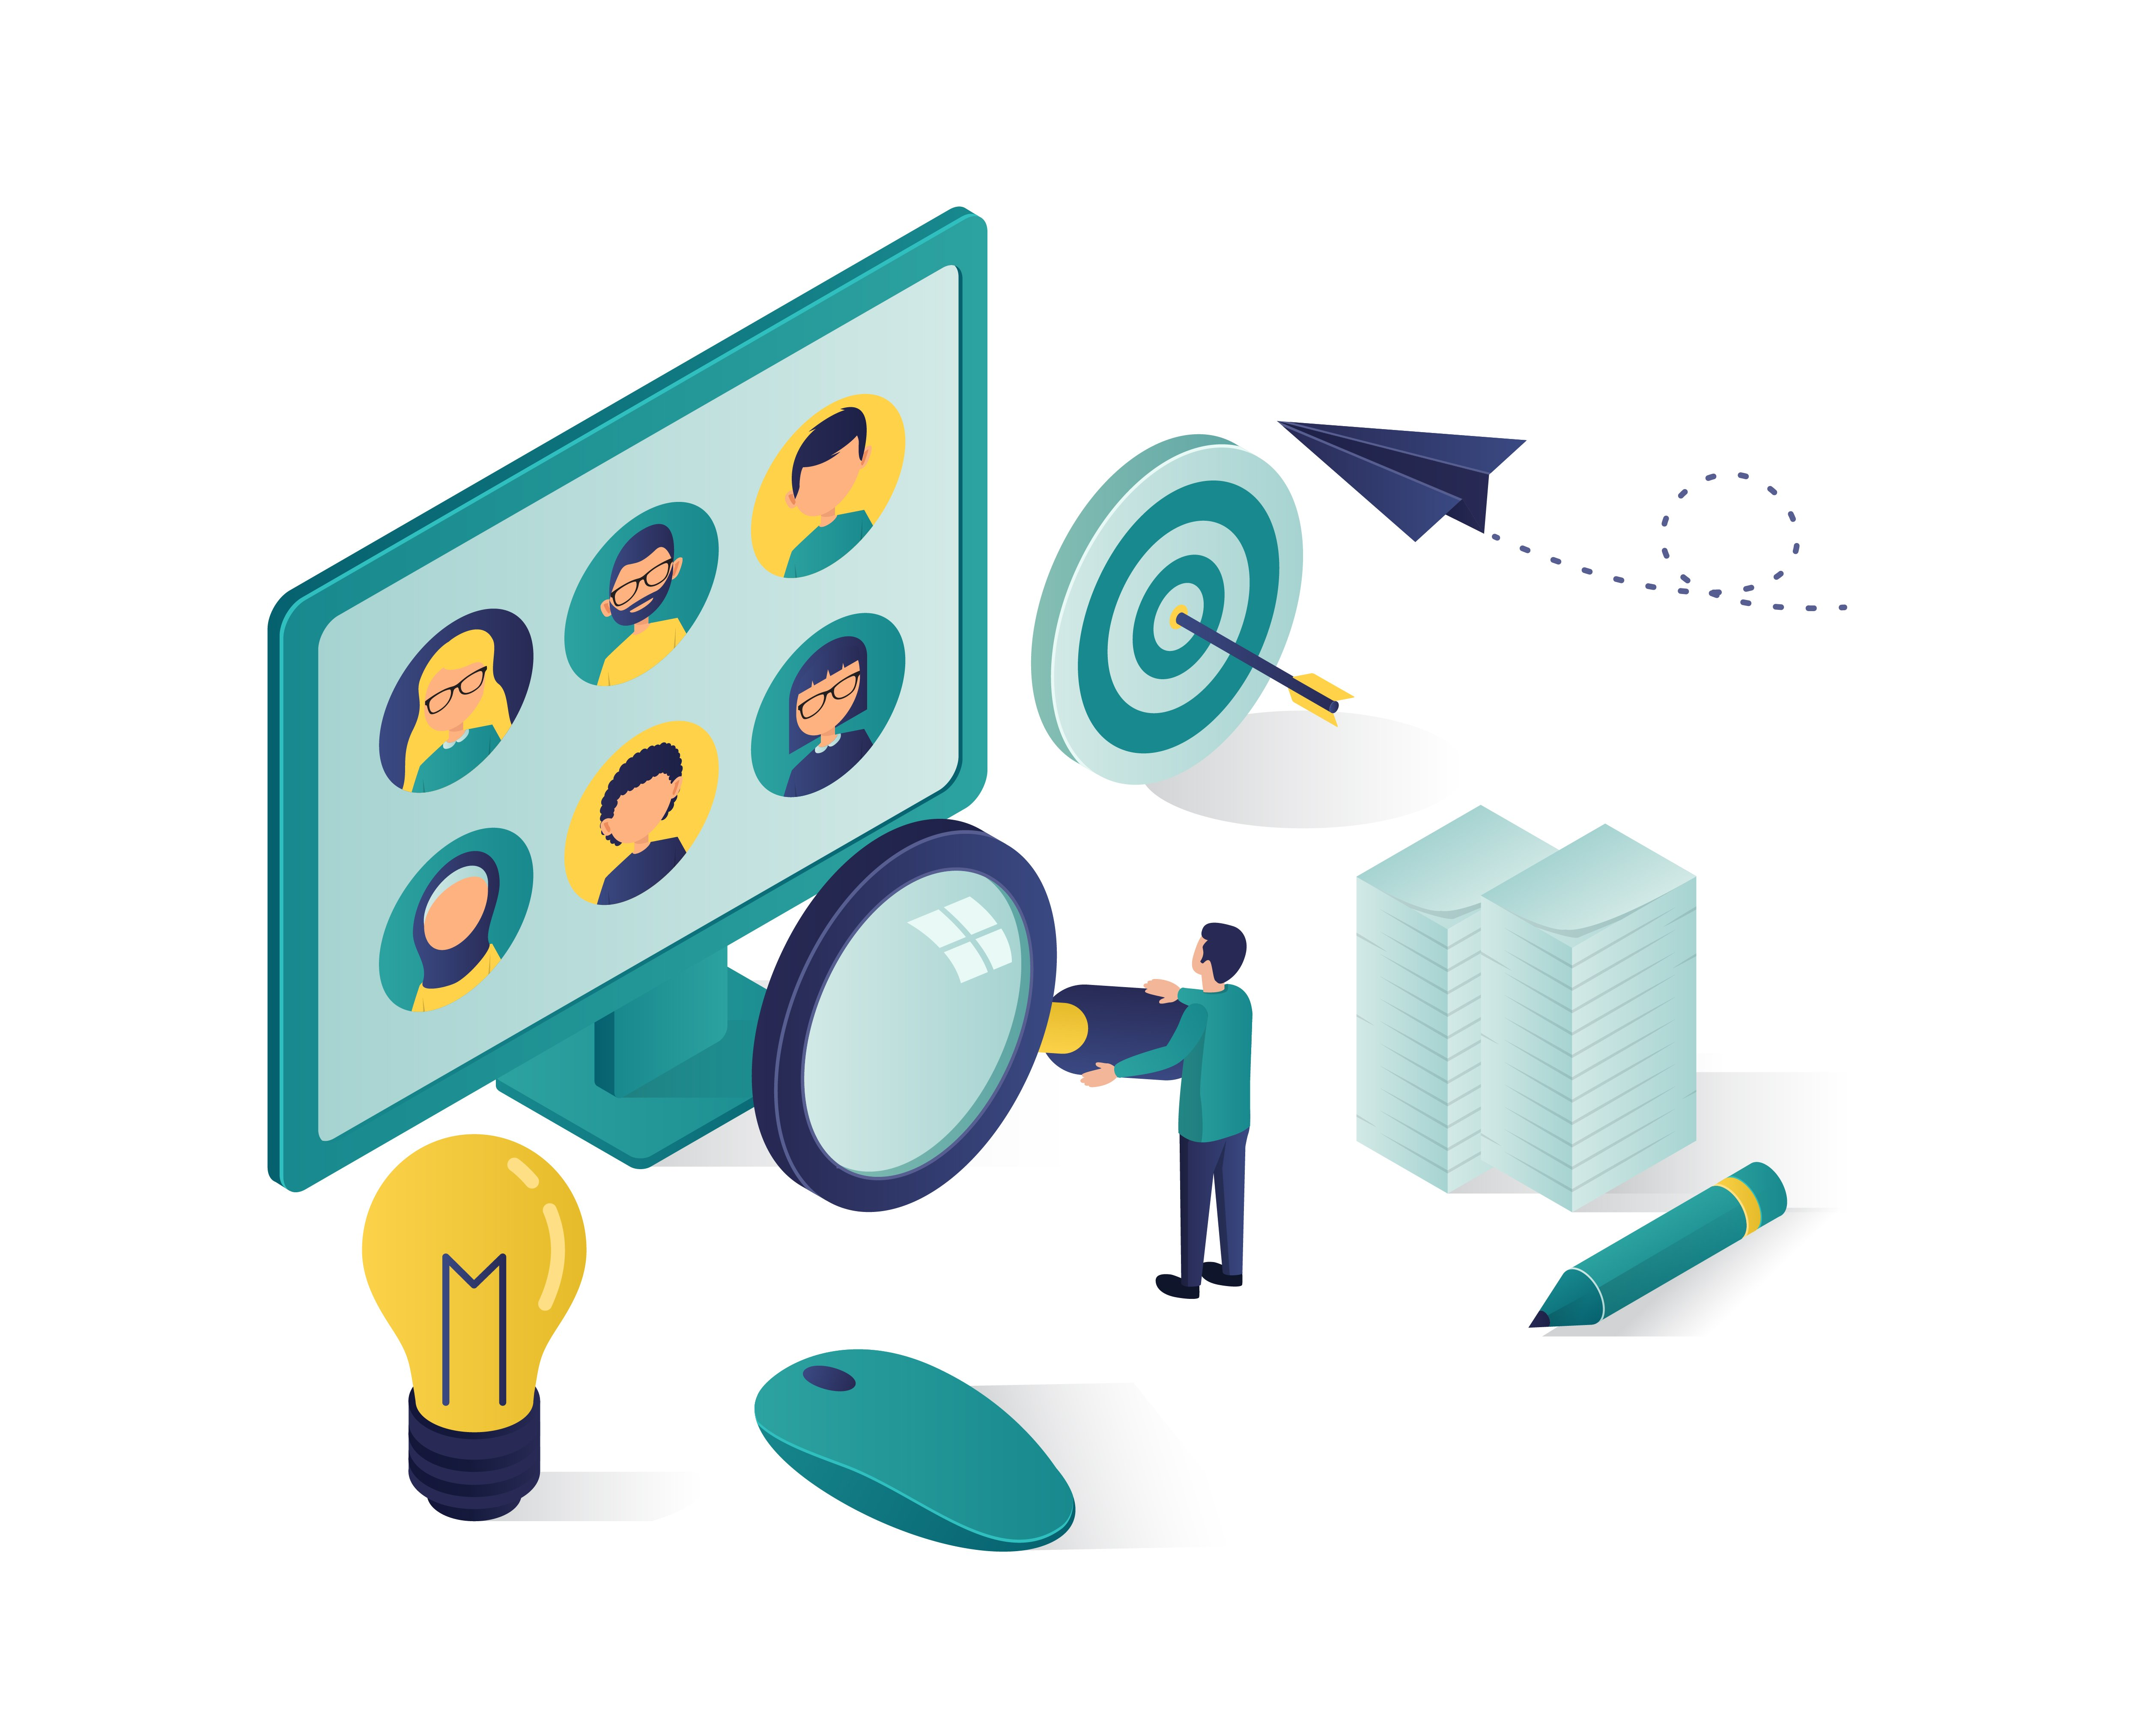 searching_for_candidate_isometric_illustrating-02